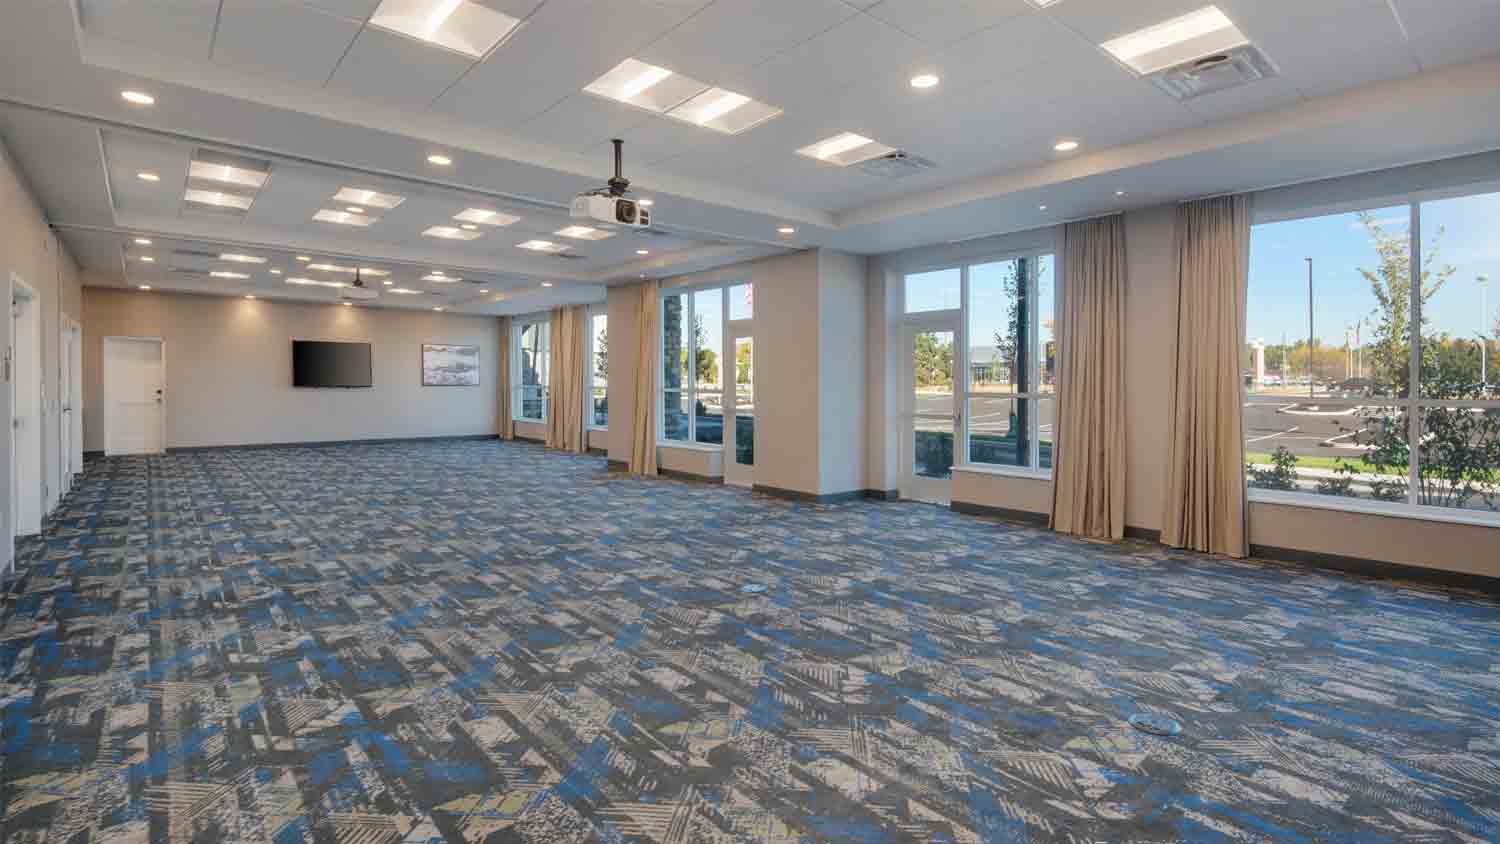 Springhill Suites by Marriott - Indianapolis Keystone